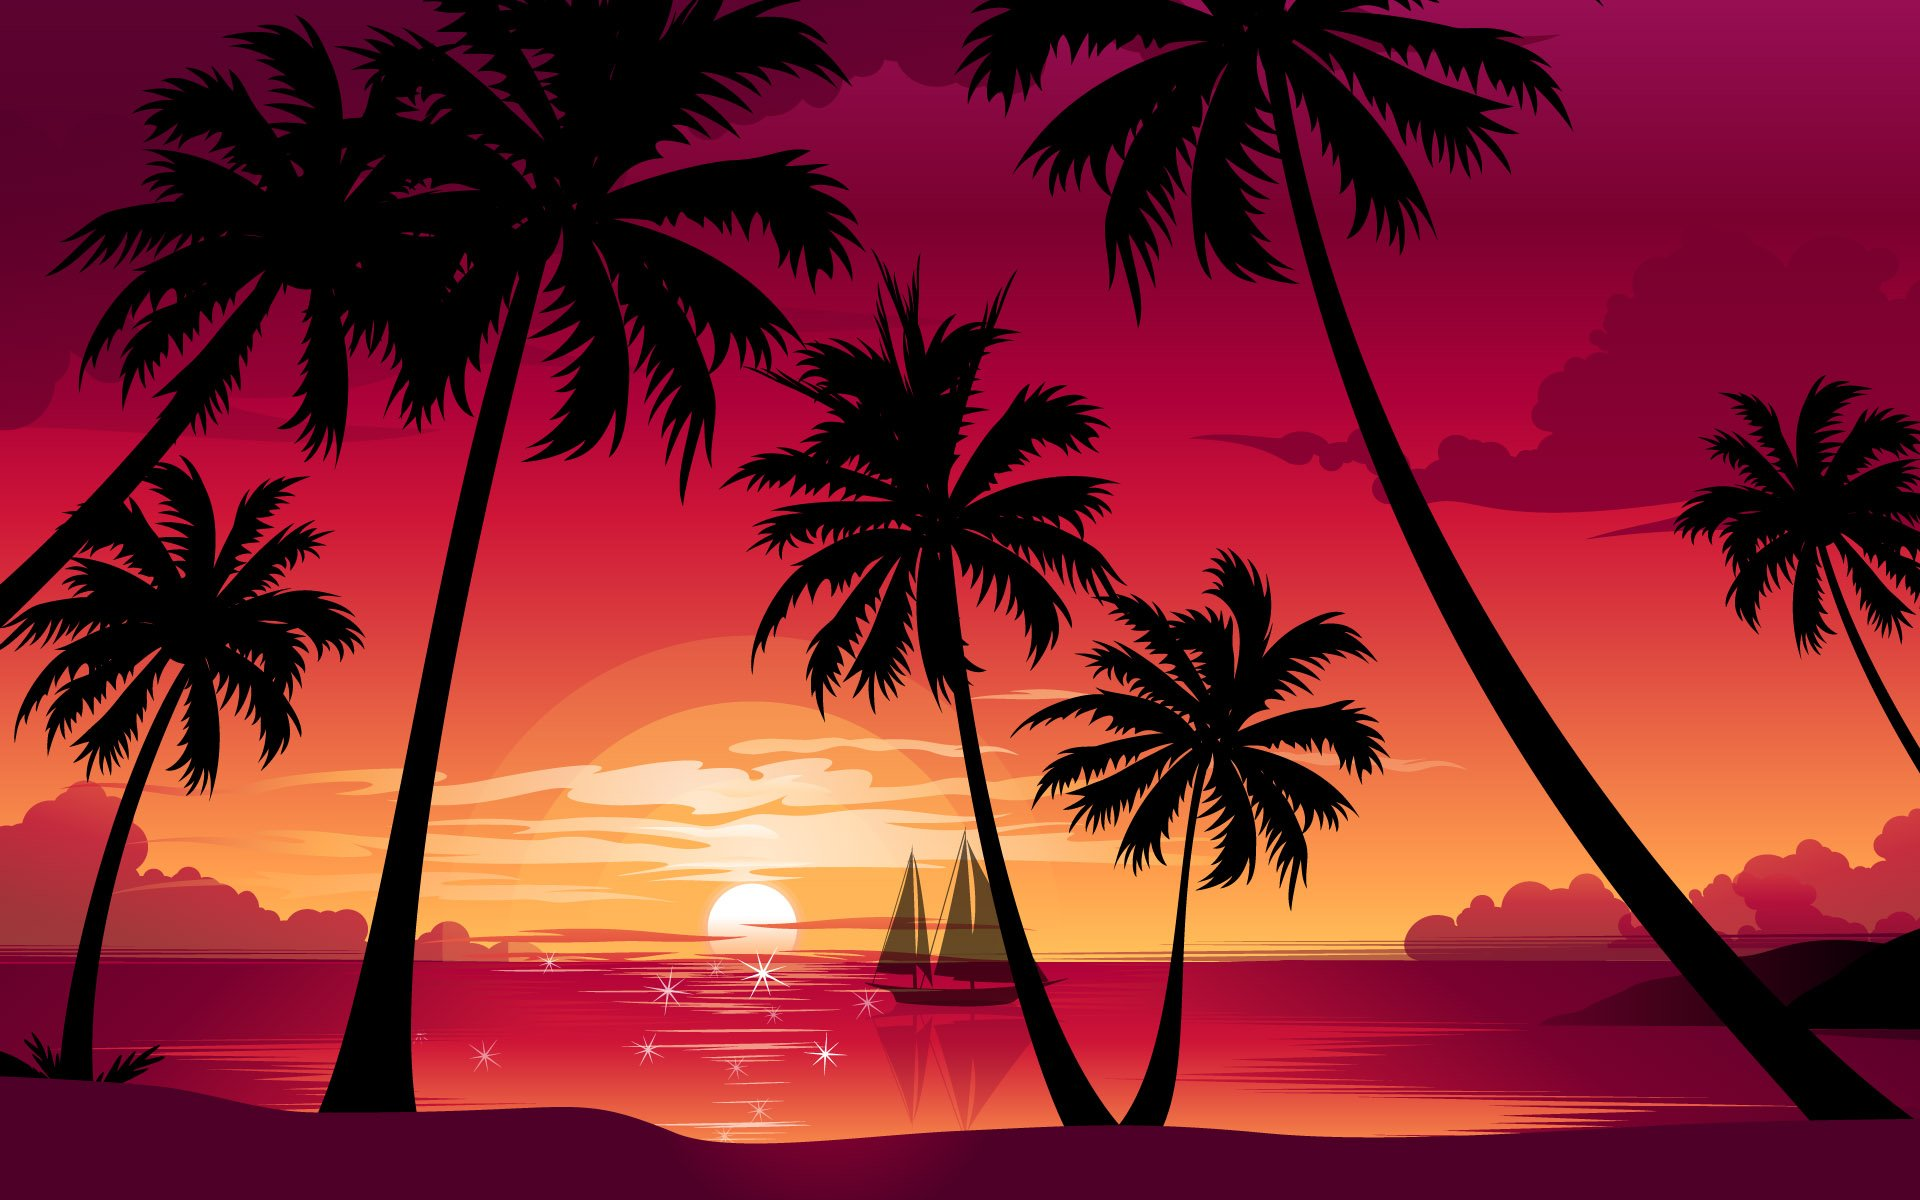 trees sunset hd wallpapers palm trees sunset wallpapers palm trees 1920x1200